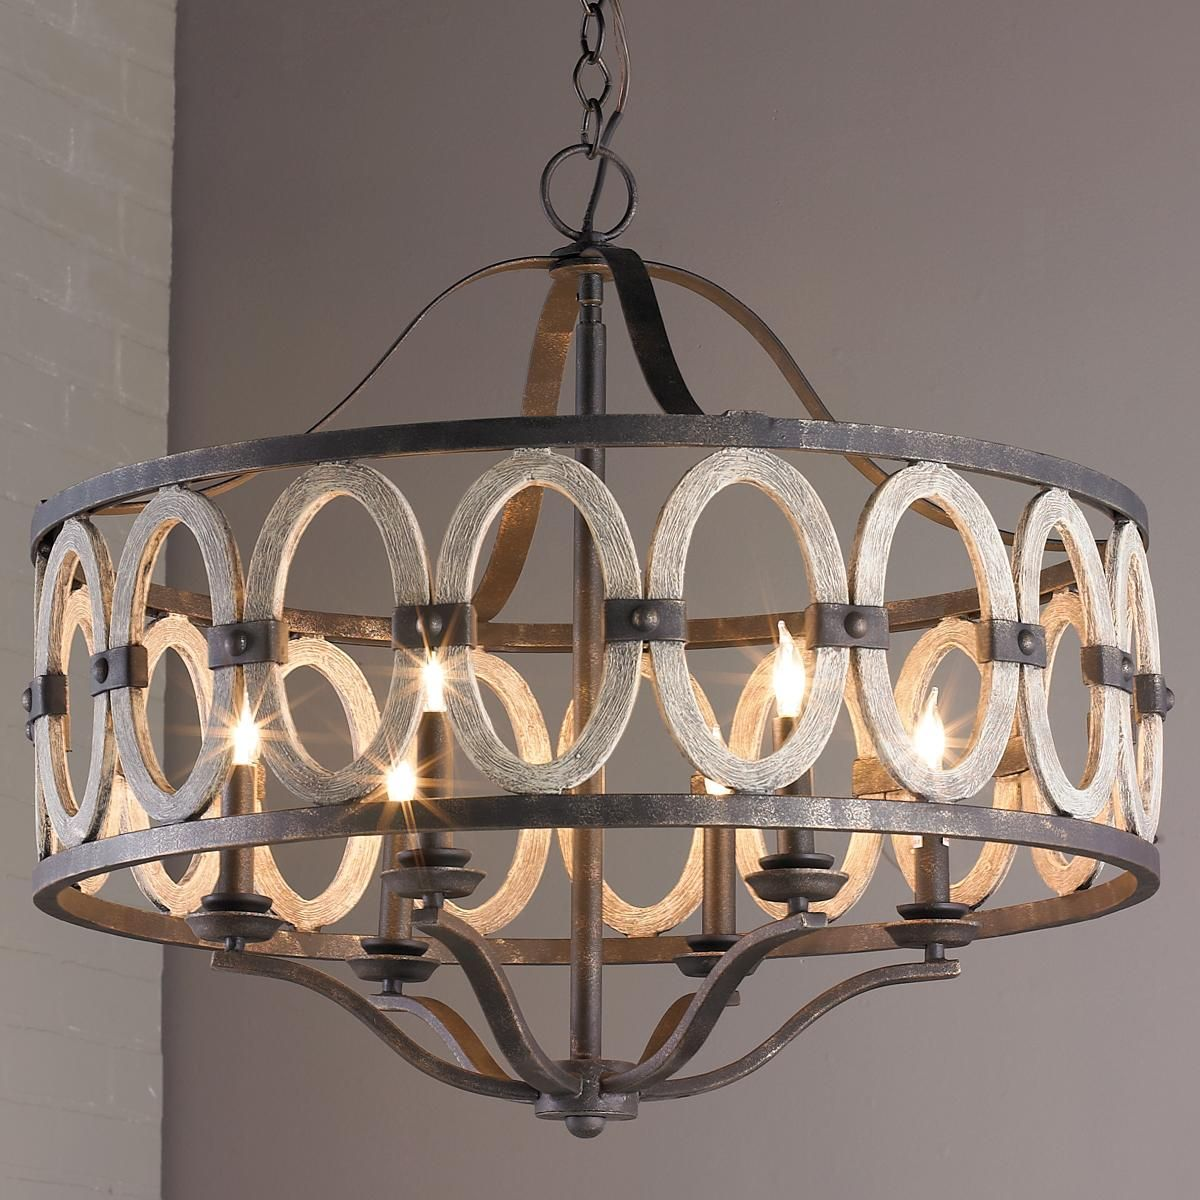 Driftwood Entwined Ovals Chandelier Dining Room